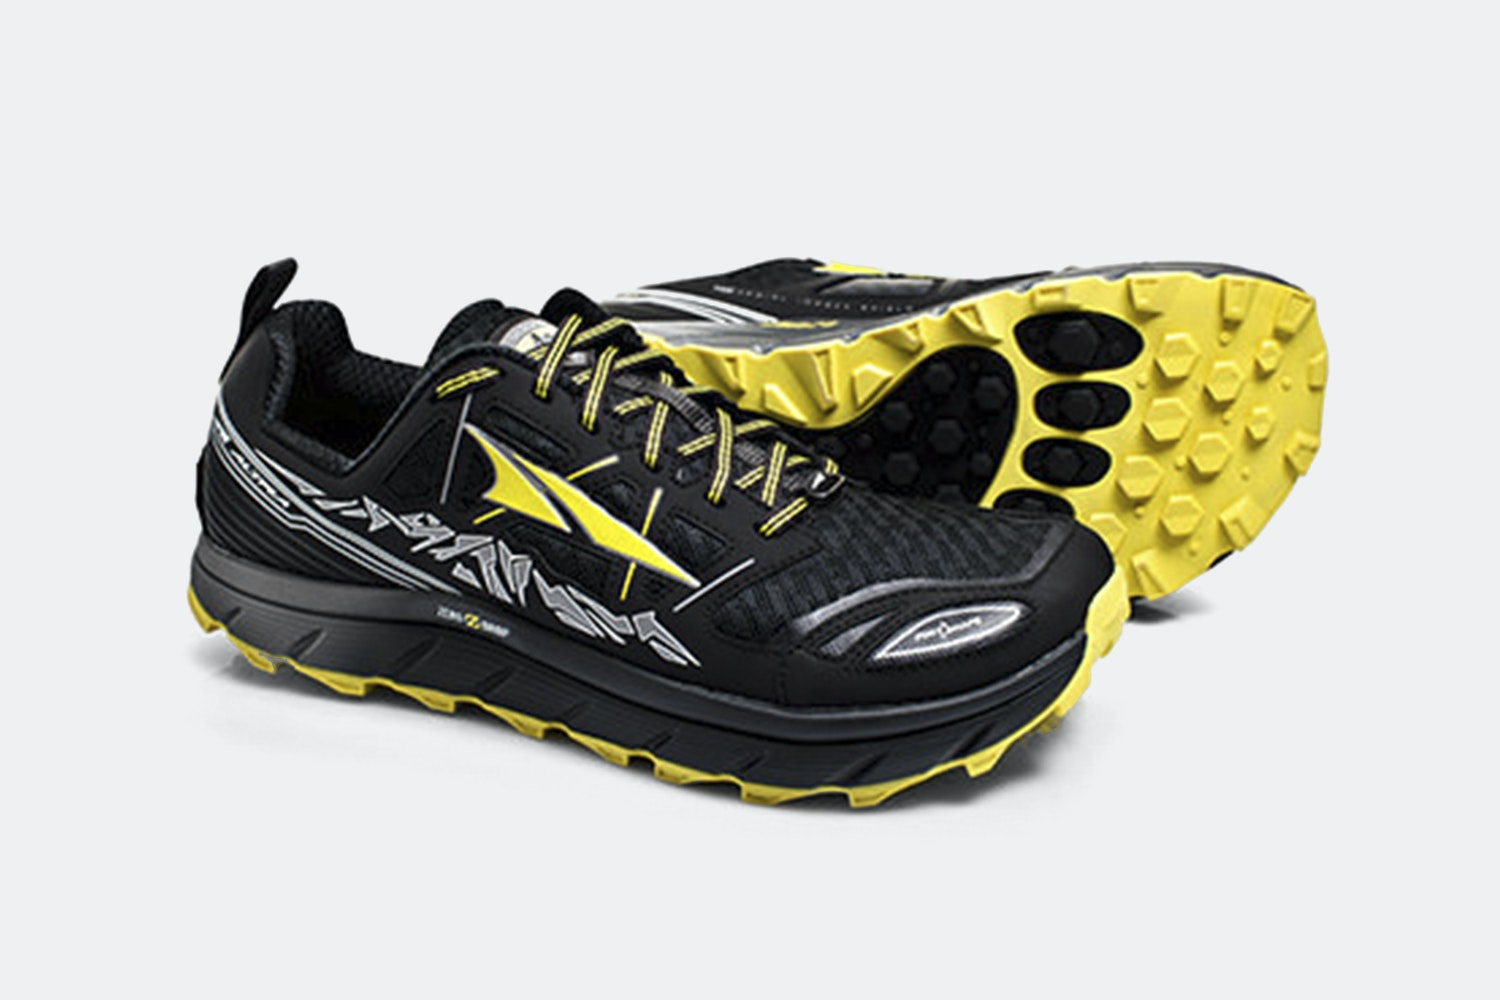 Altra Lone Peak 3.0 Trail Running Shoe